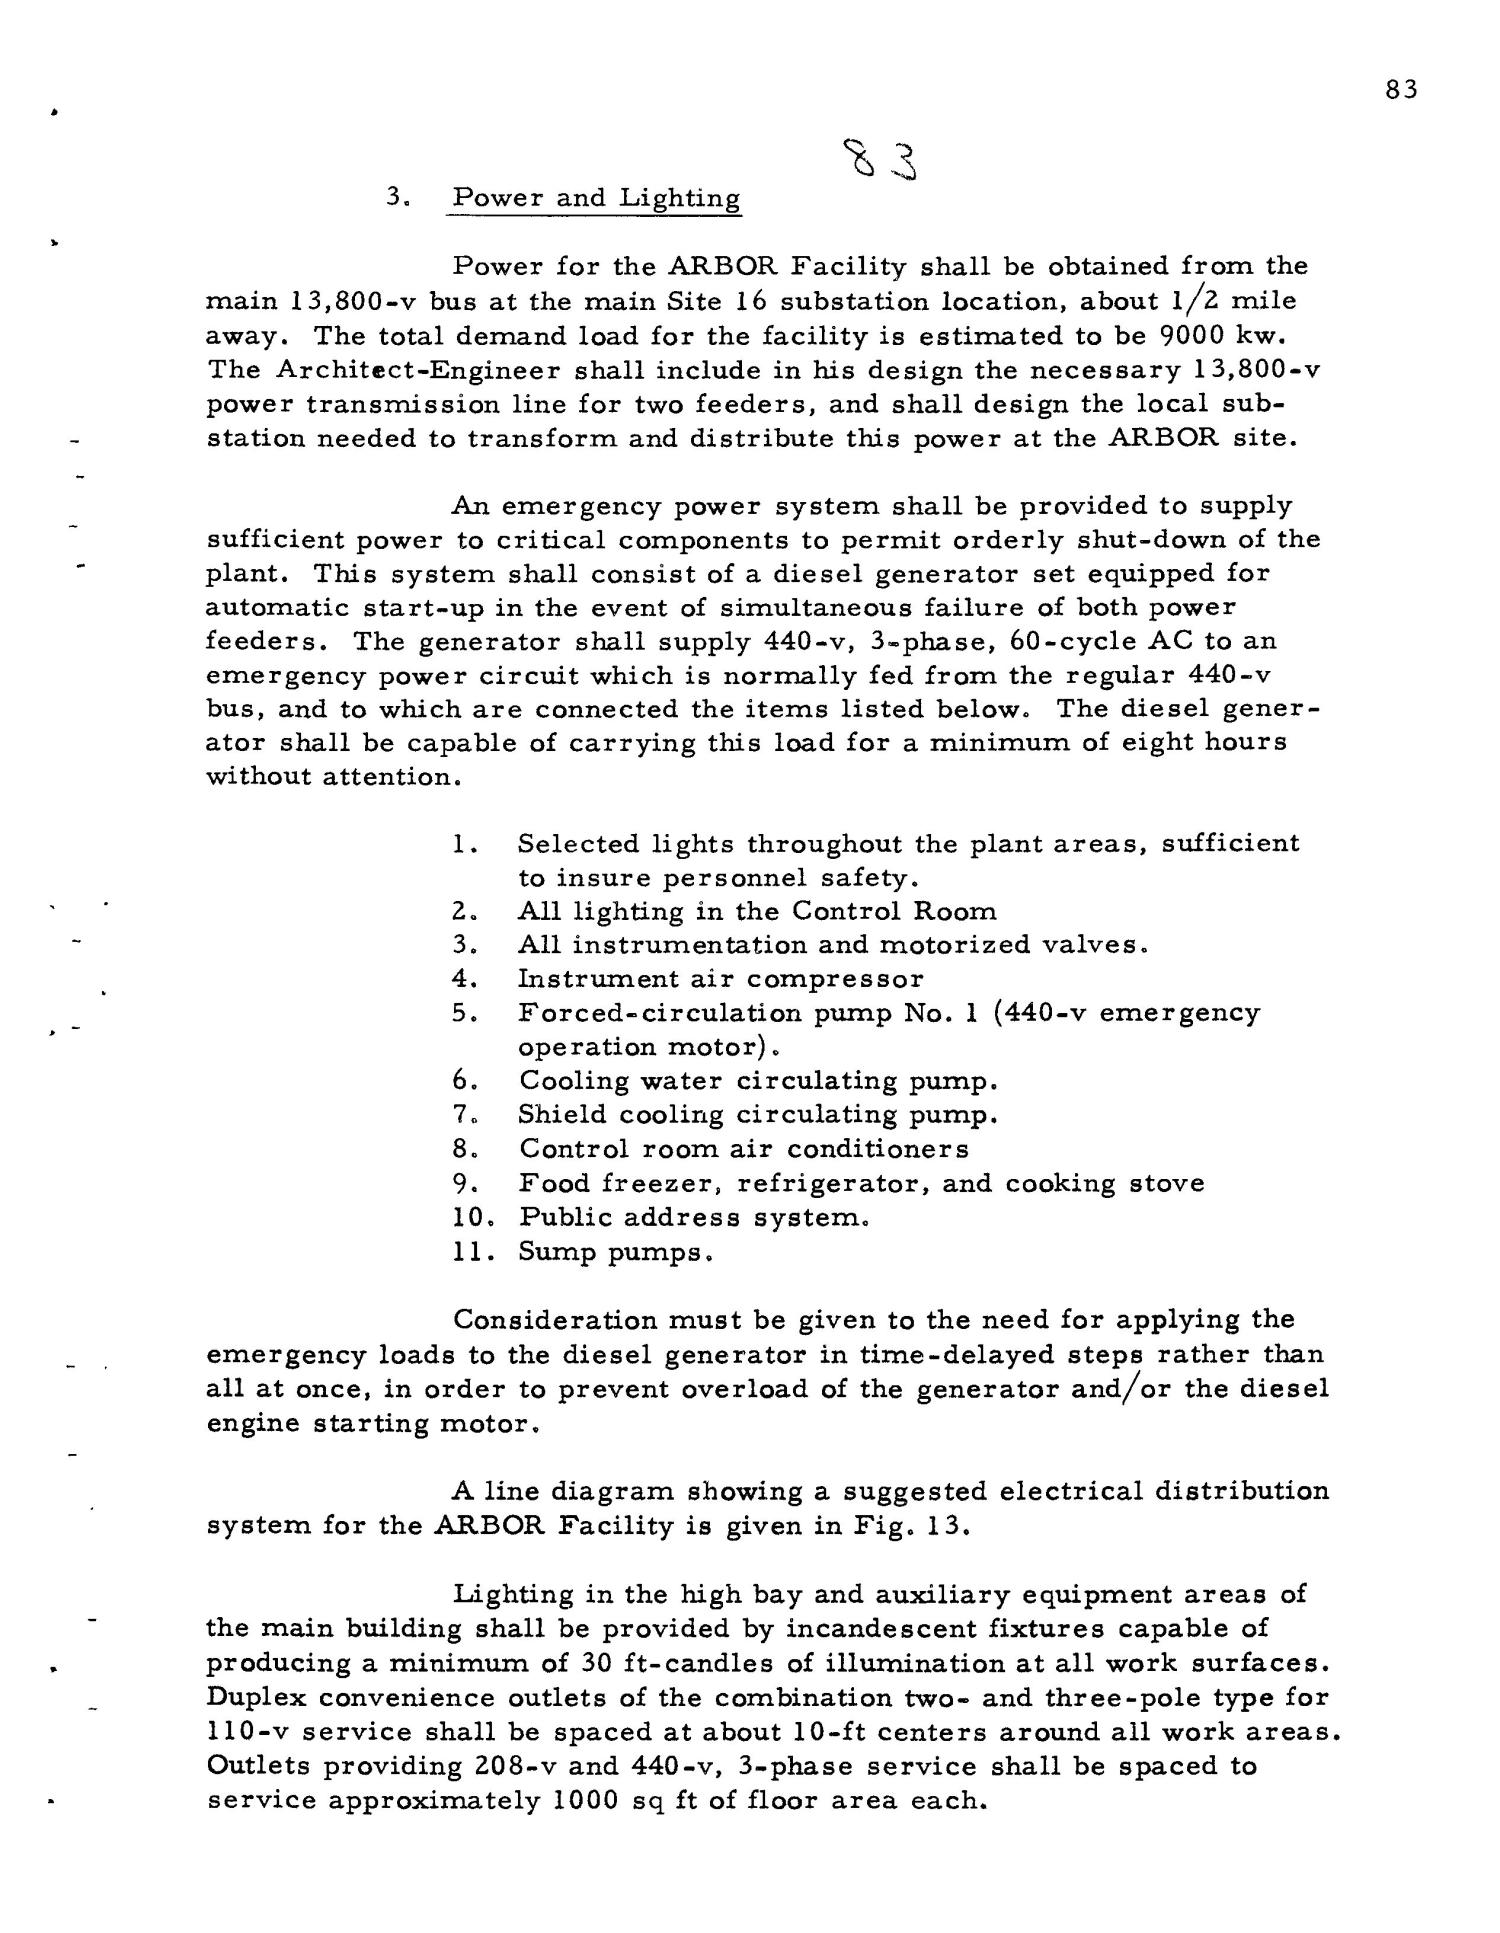 PRELIMINARY DESIGN REQUIREMENTS ARGONNE BOILING REACTOR (ARBOR) FACILITY. Revision I                                                                                                      [Sequence #]: 85 of 161